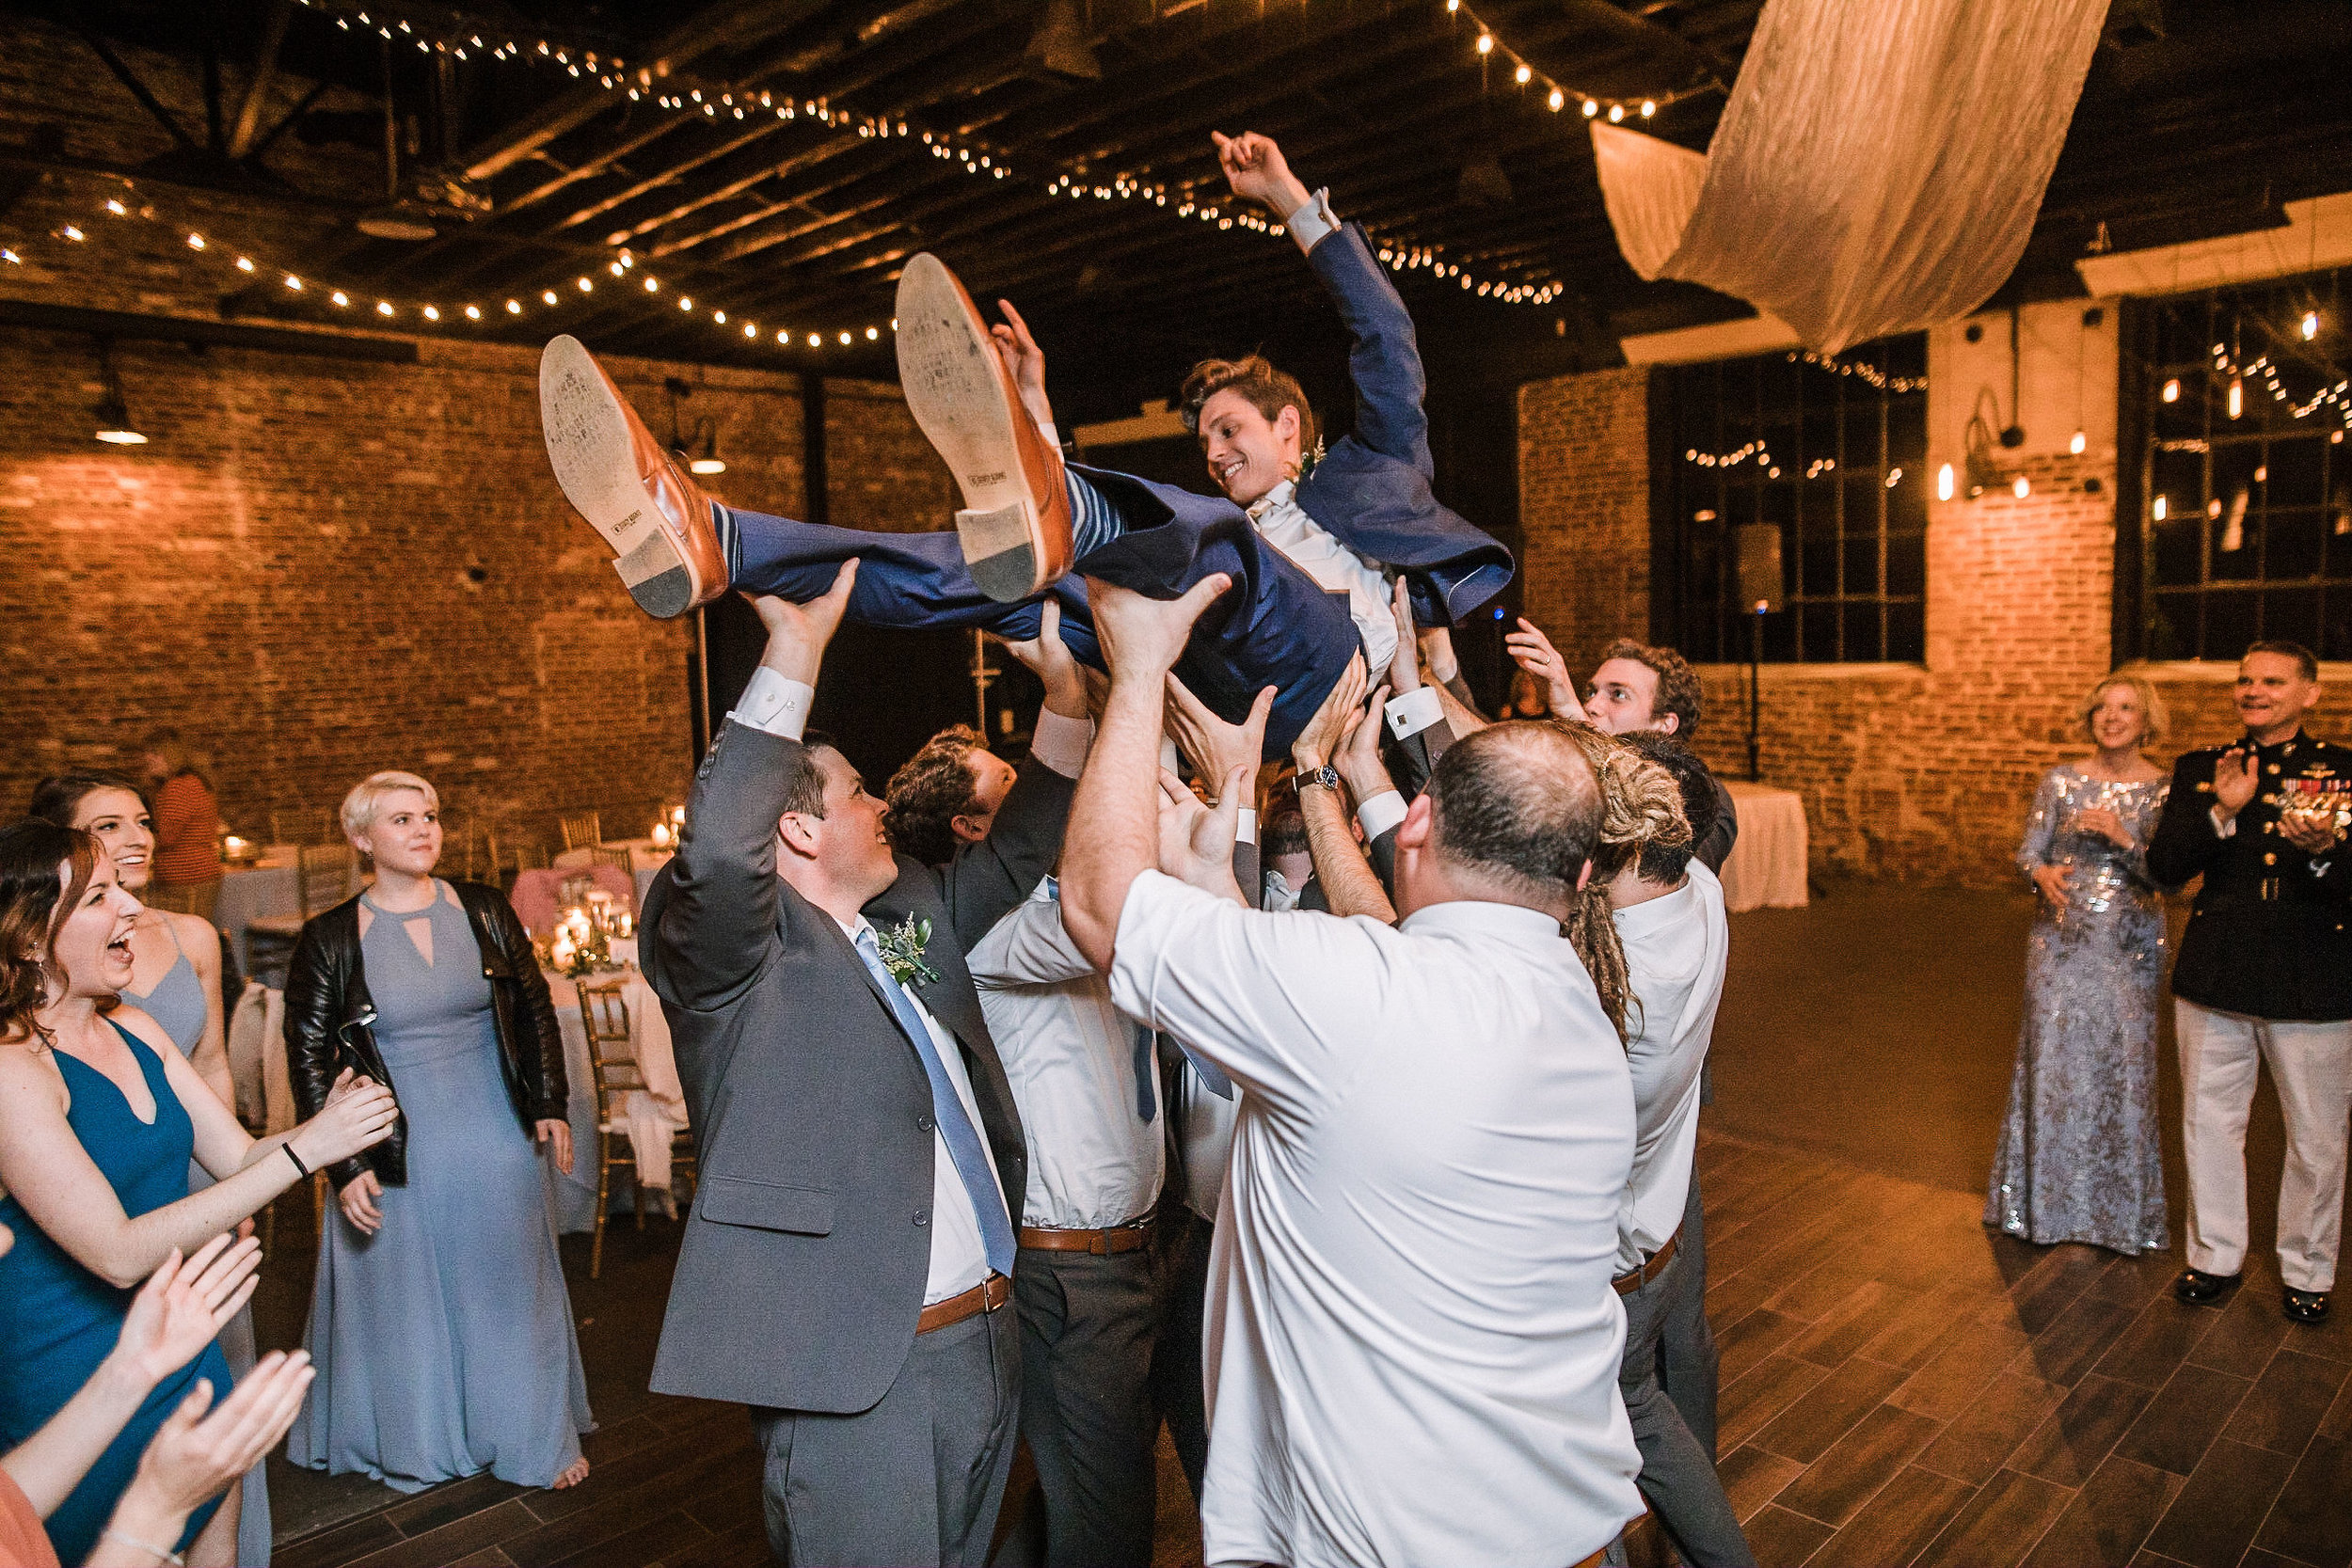 groom being carried by guests at the Inn at the Old Silk Mill